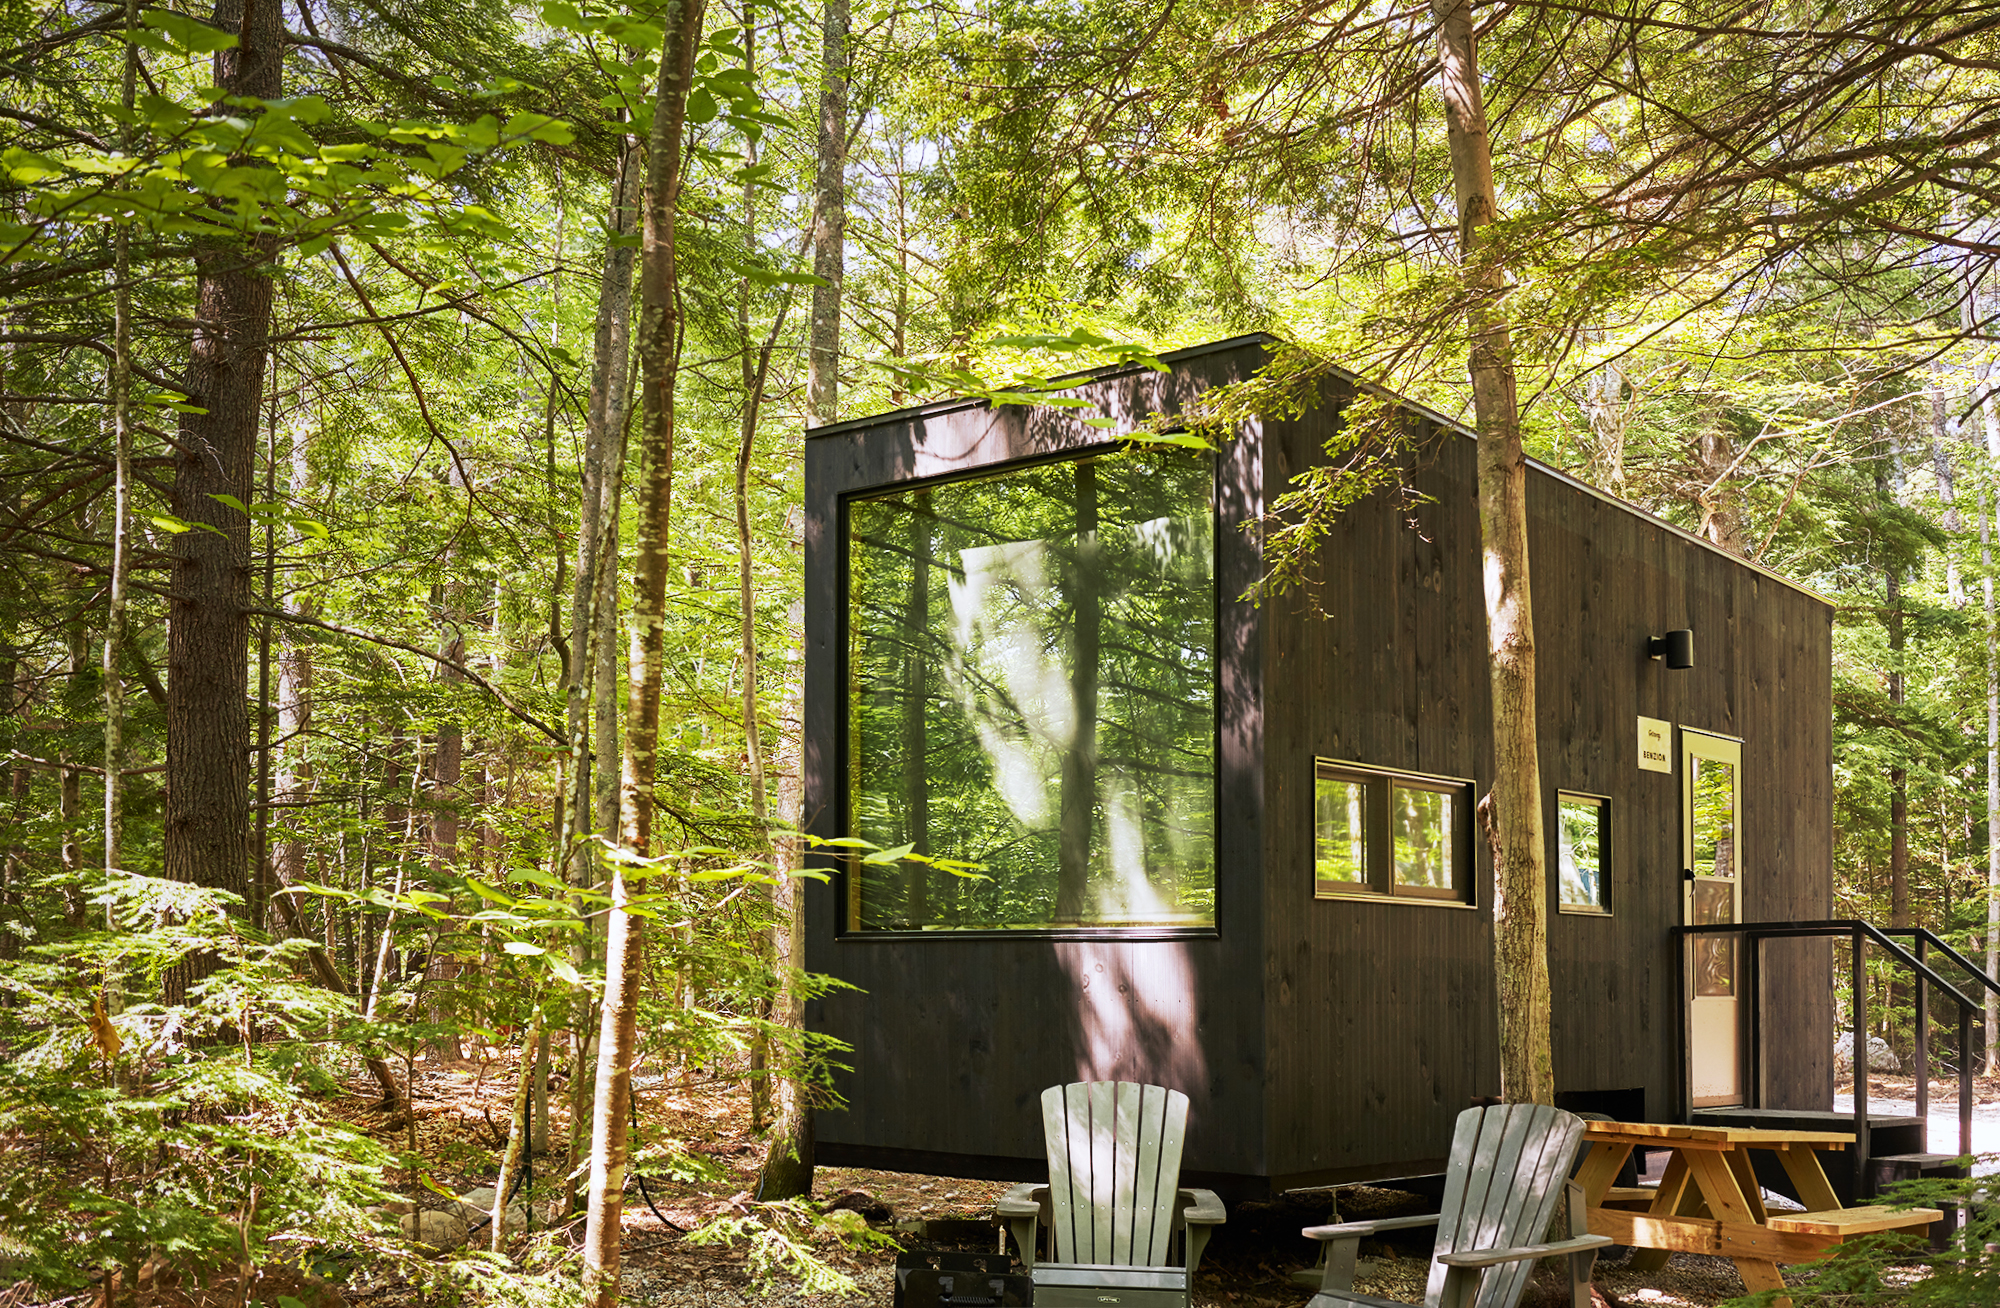 Getaway cabin in New York with large windows surrounded by green forest and lawn chairs.